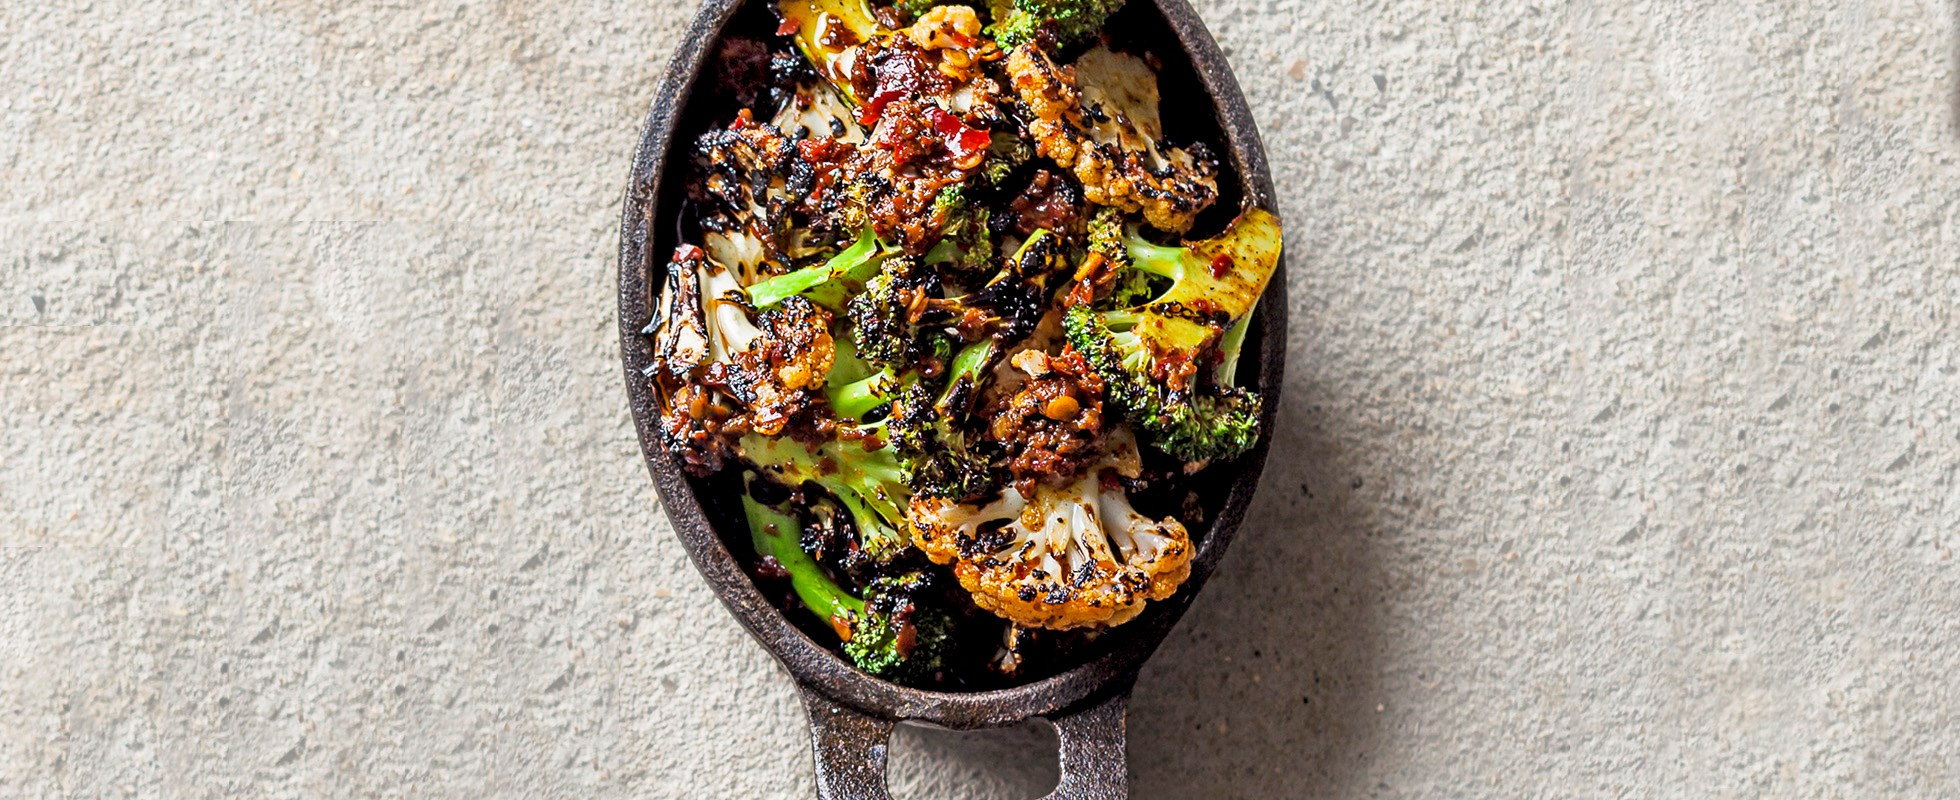 Chargrilled broccoli with harissa